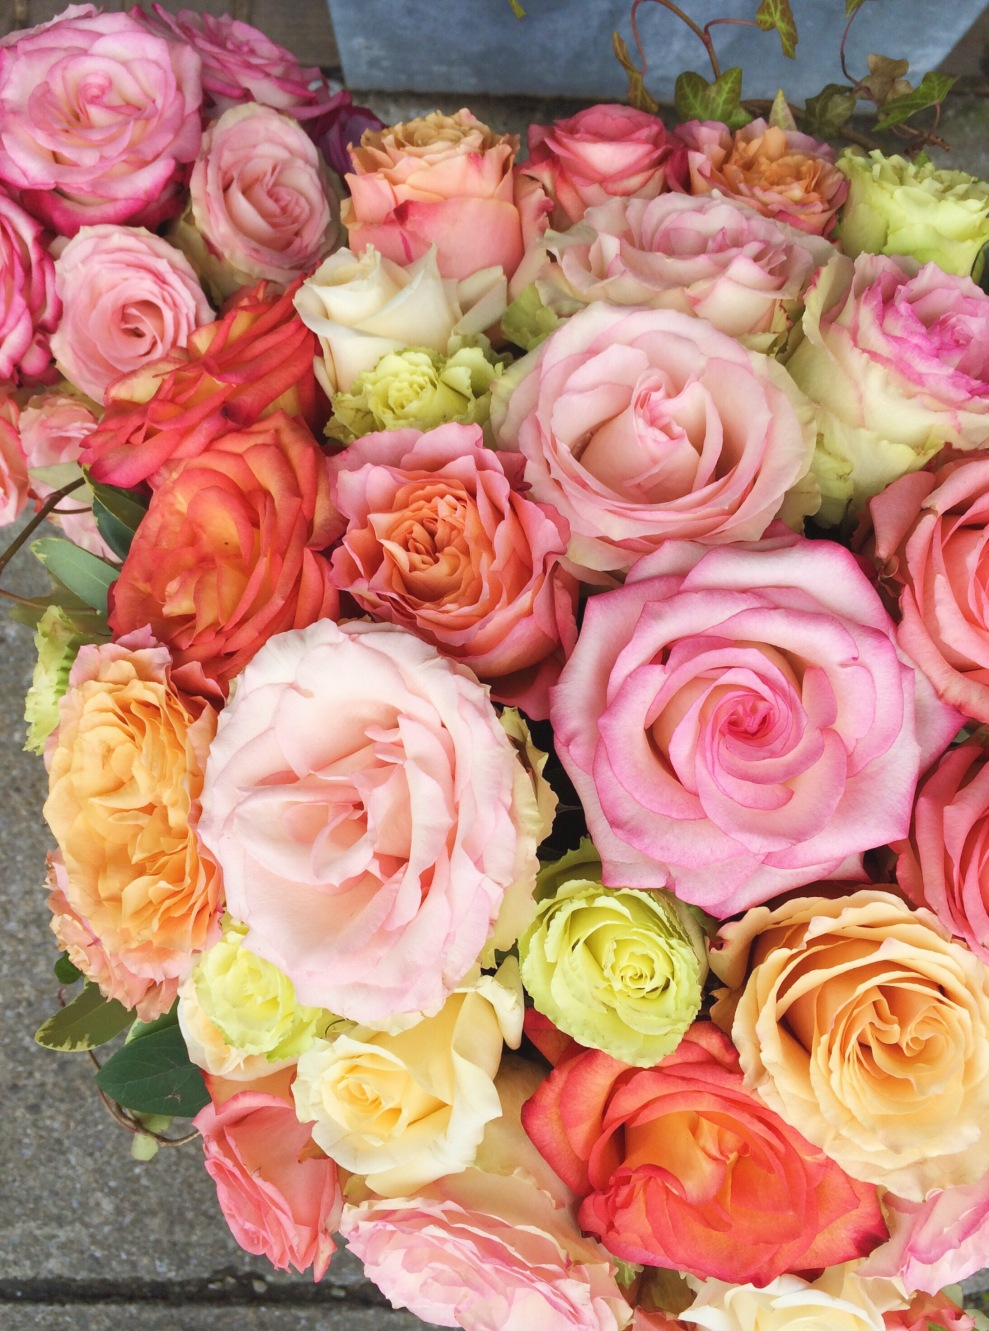 rose_bouquet_pastels